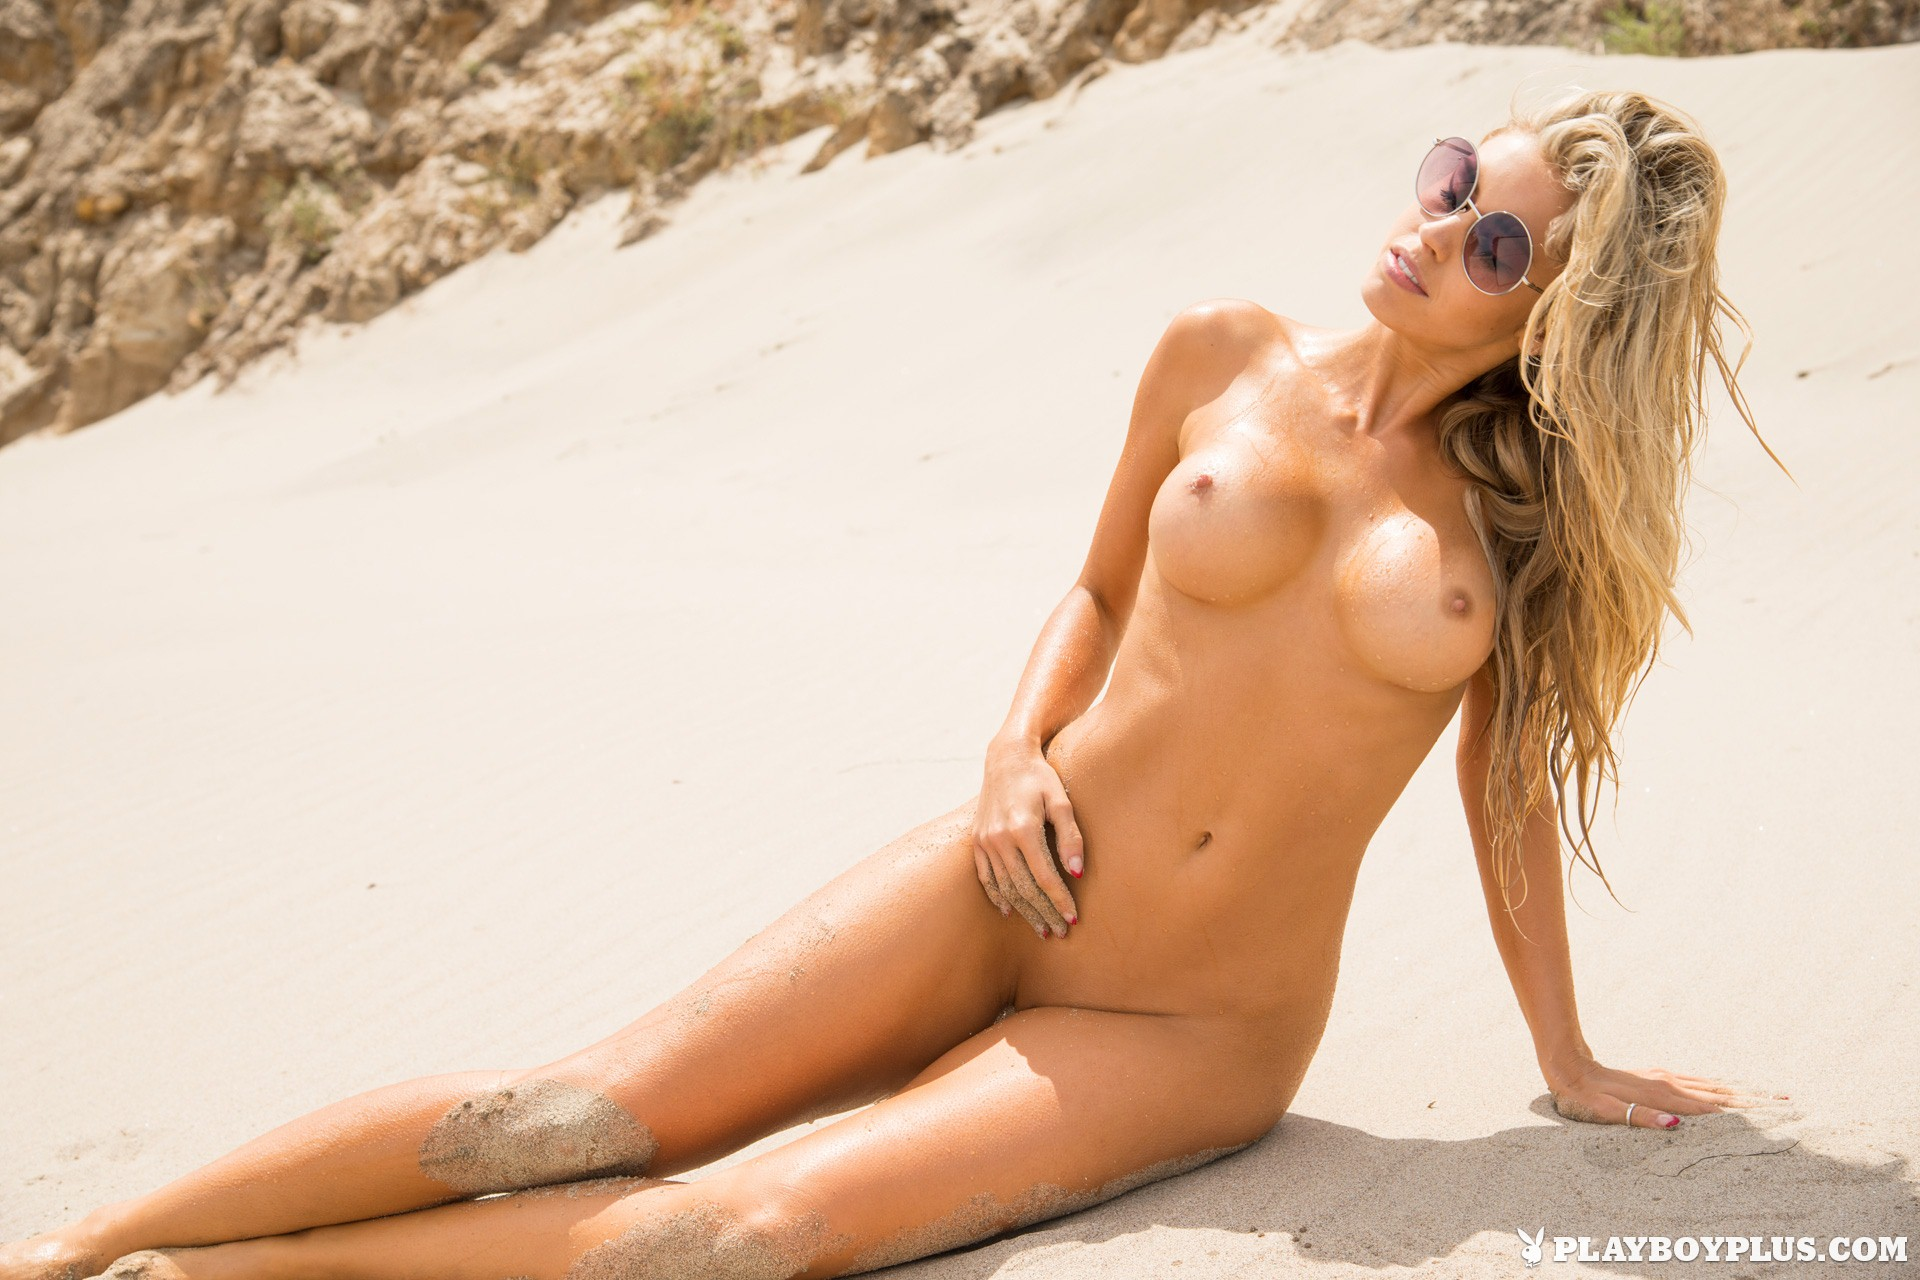 Kayla Rae Reid Nude In Beach Bum  A Tribute To Playboy-7883